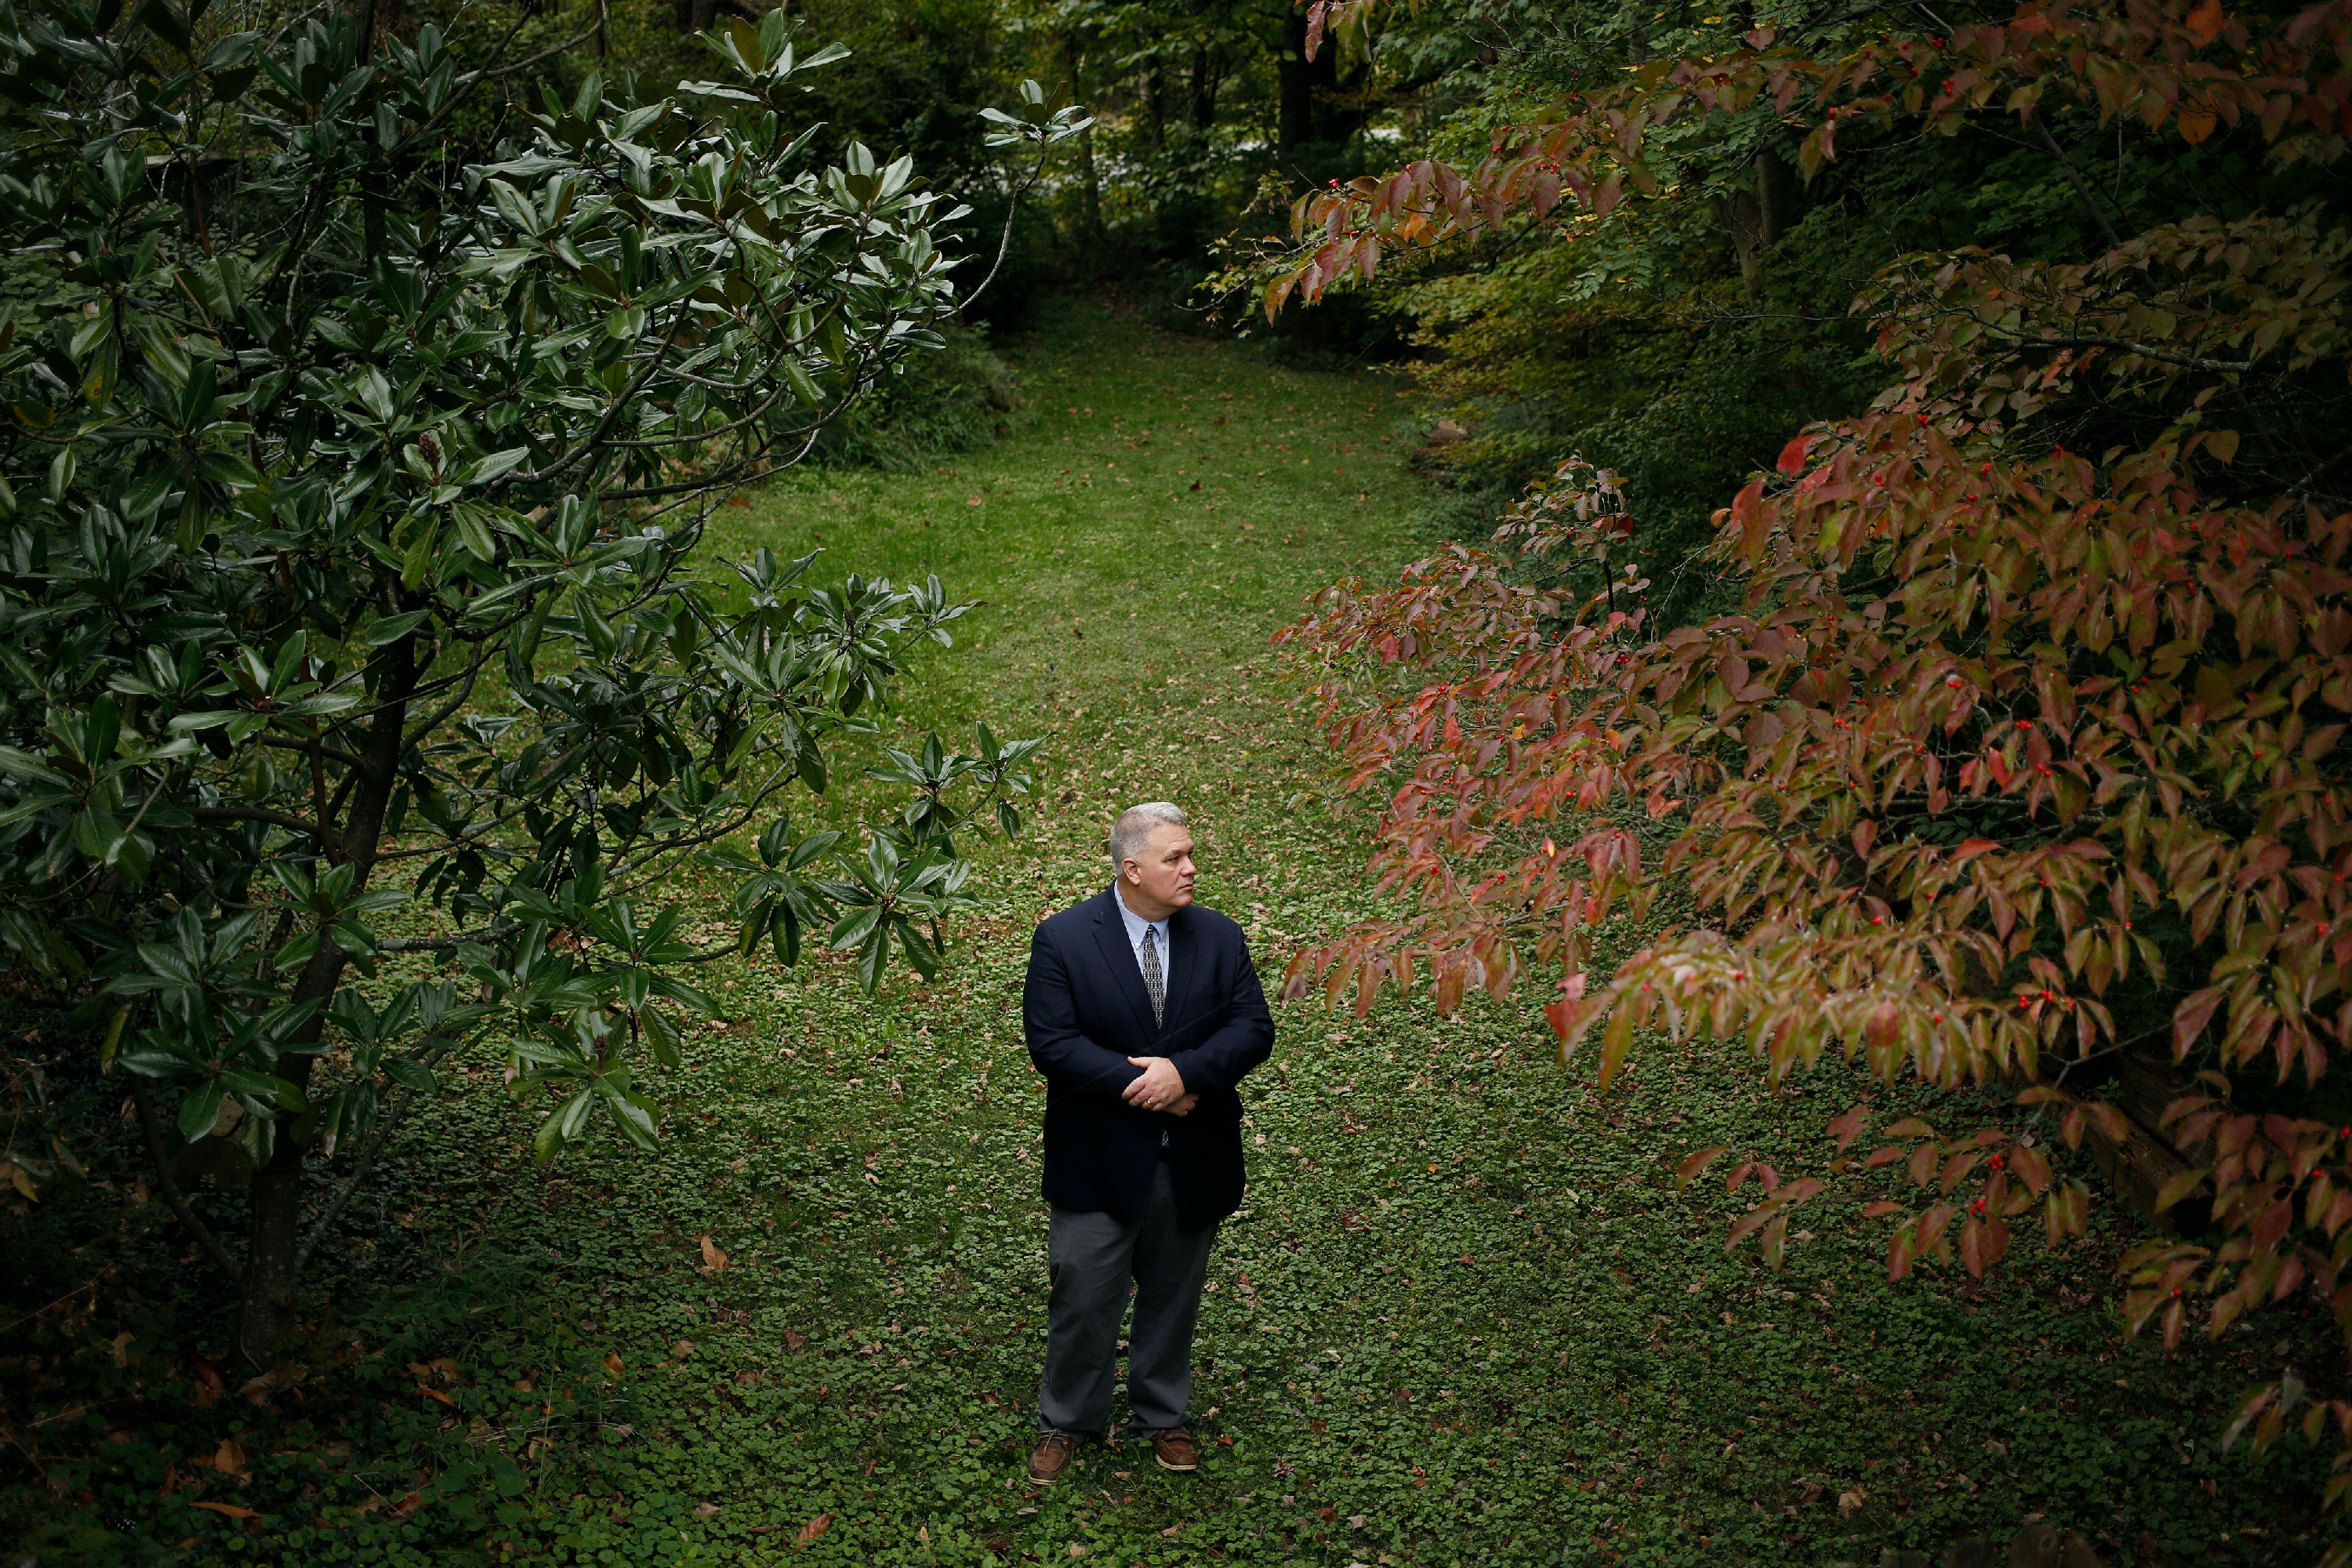 Former Kentucky Retirement Systems trustee Chris Tobe stands for a portrait at his parents' house in Floyds Knobs, Indiana, U.S., on Friday, Oct. 19, 2018. Photographer: Luke Sharrett for The Intercept